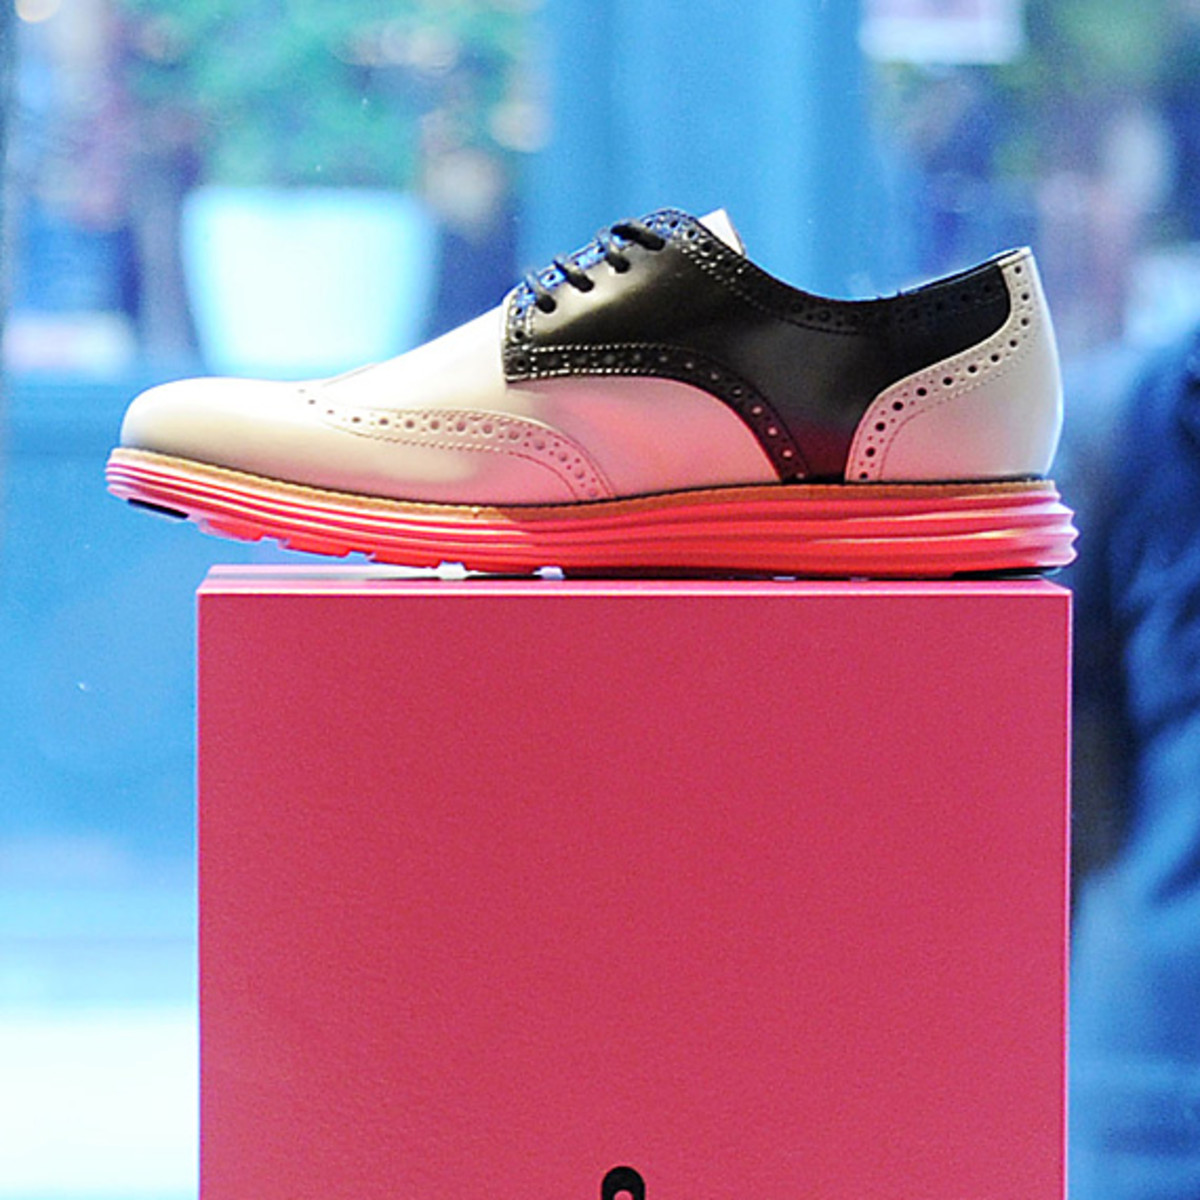 fragment-design-cole-haan-lunargrand-collection-launch-07